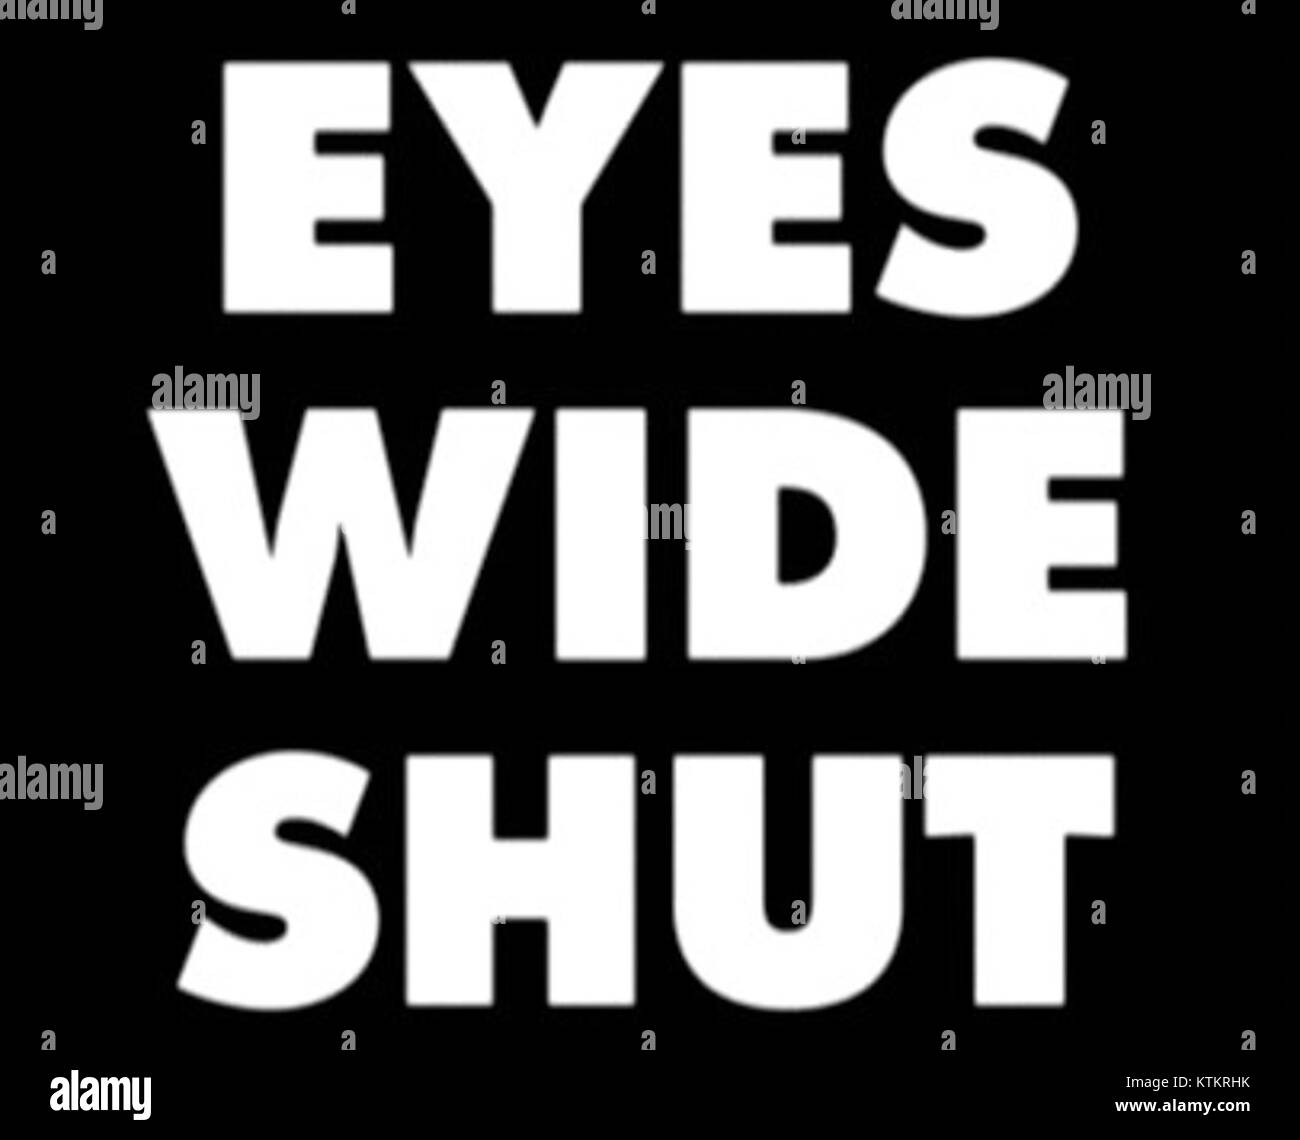 Eyes wide shut logo - Stock Image